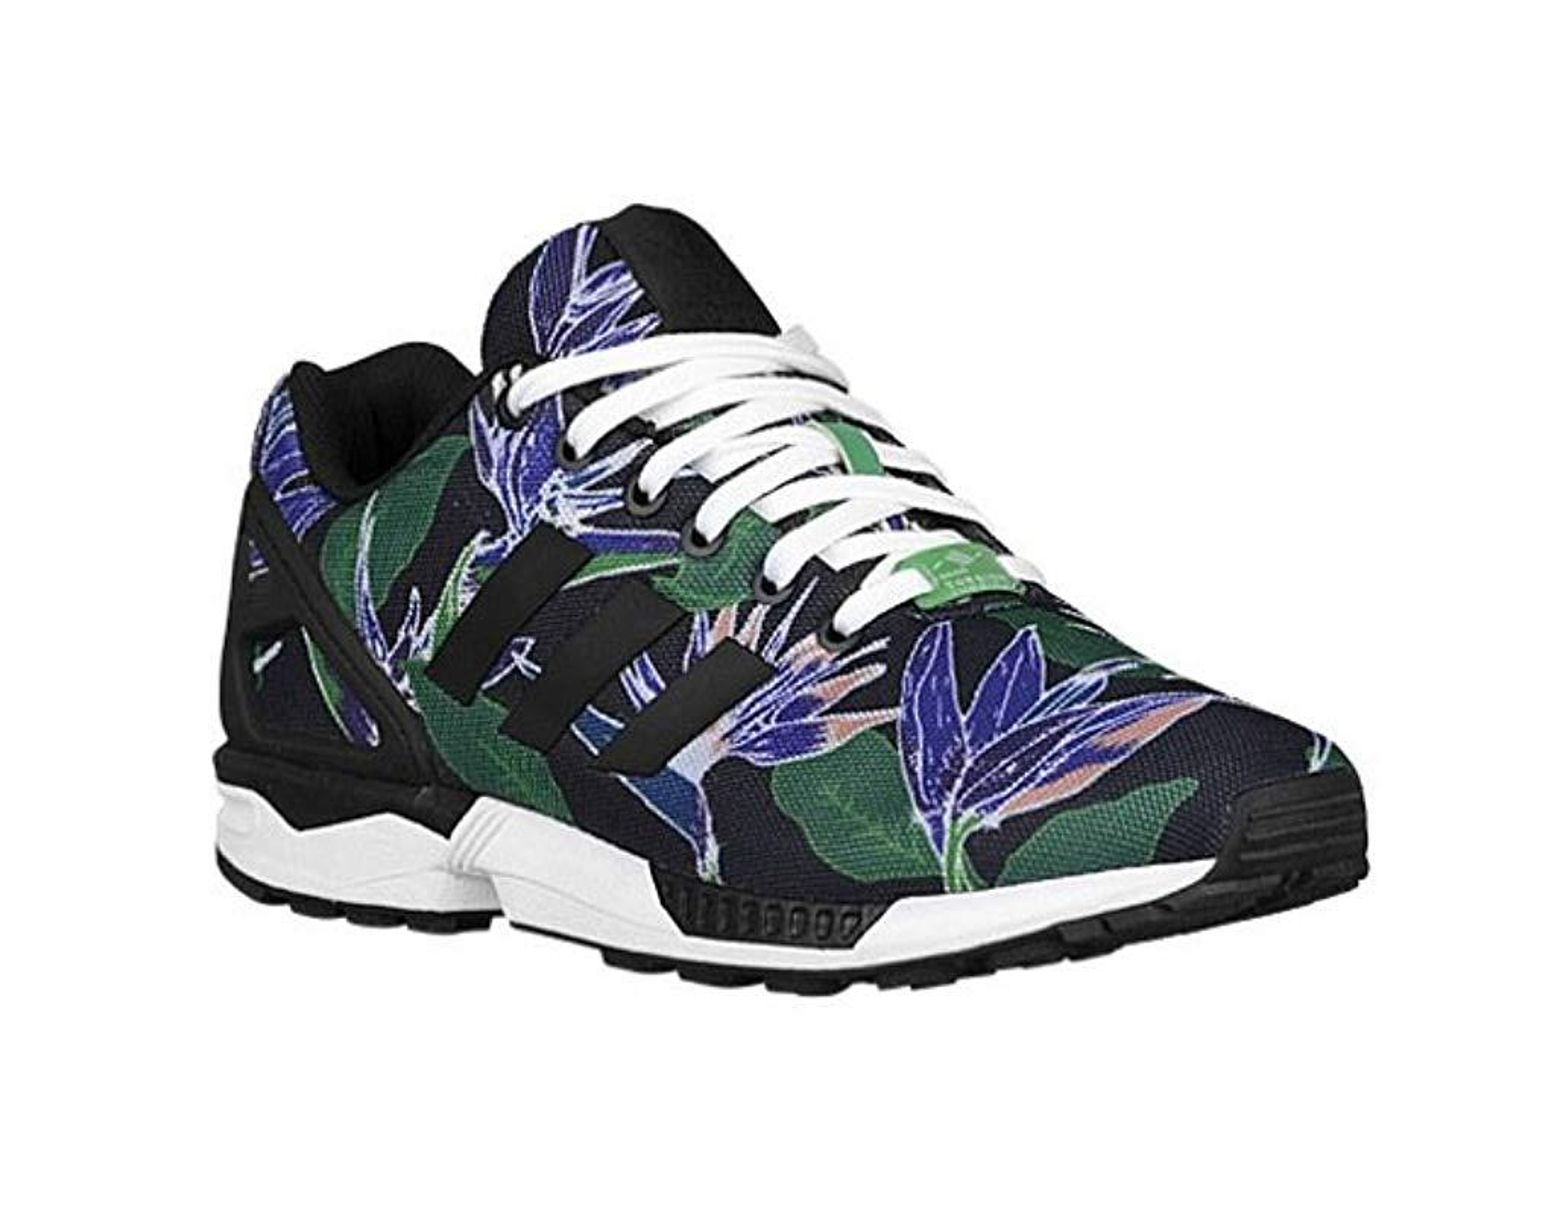 size 40 3f787 d7120 adidas Zx Flux Floral Uomo Codice:b34518 in Blue for Men - Lyst